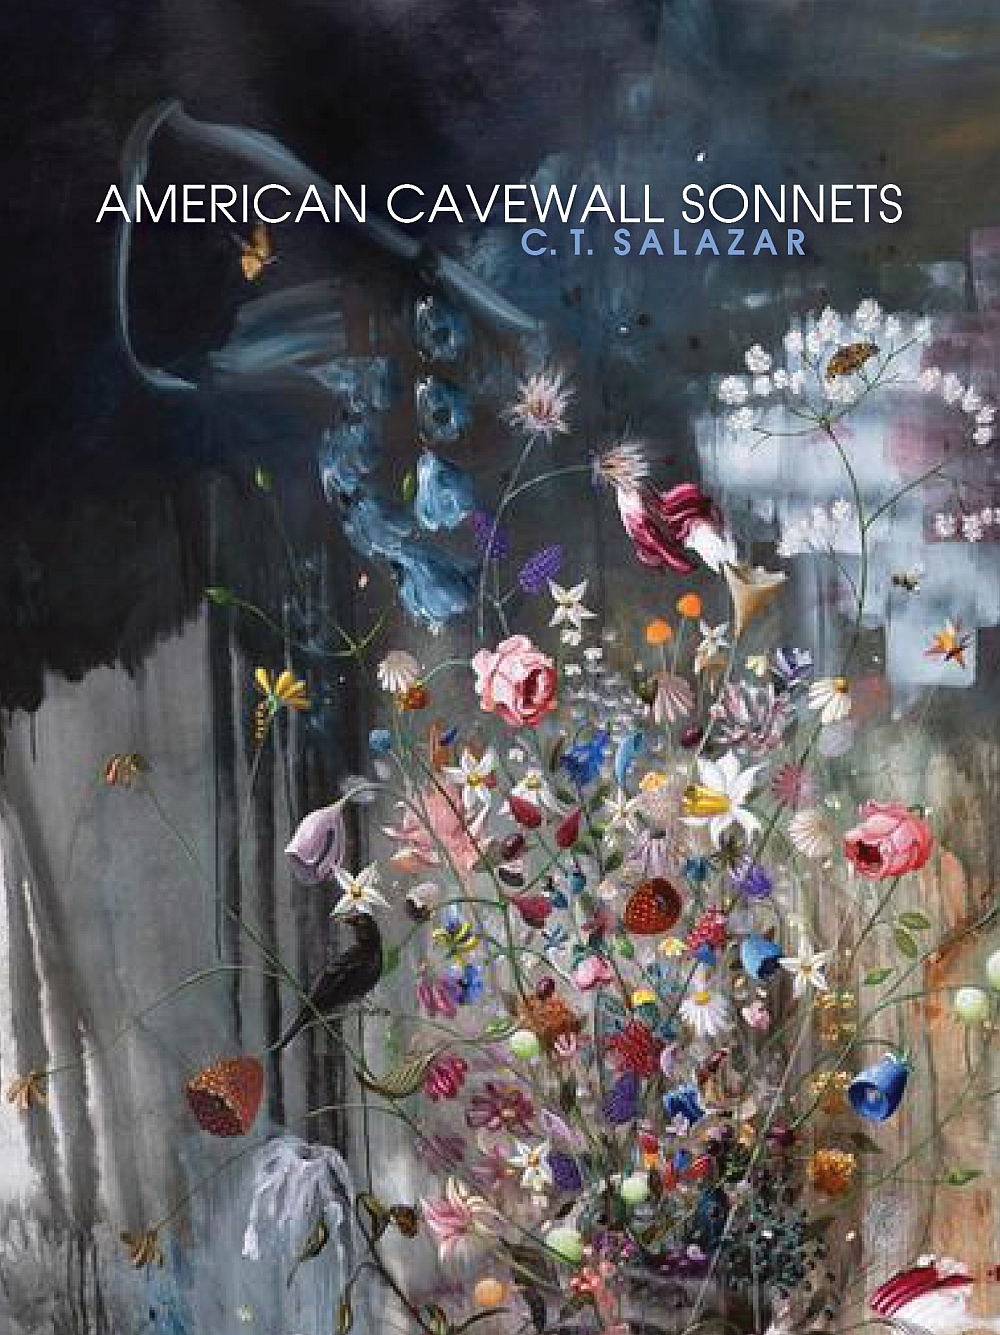 American Cavewall Sonnets